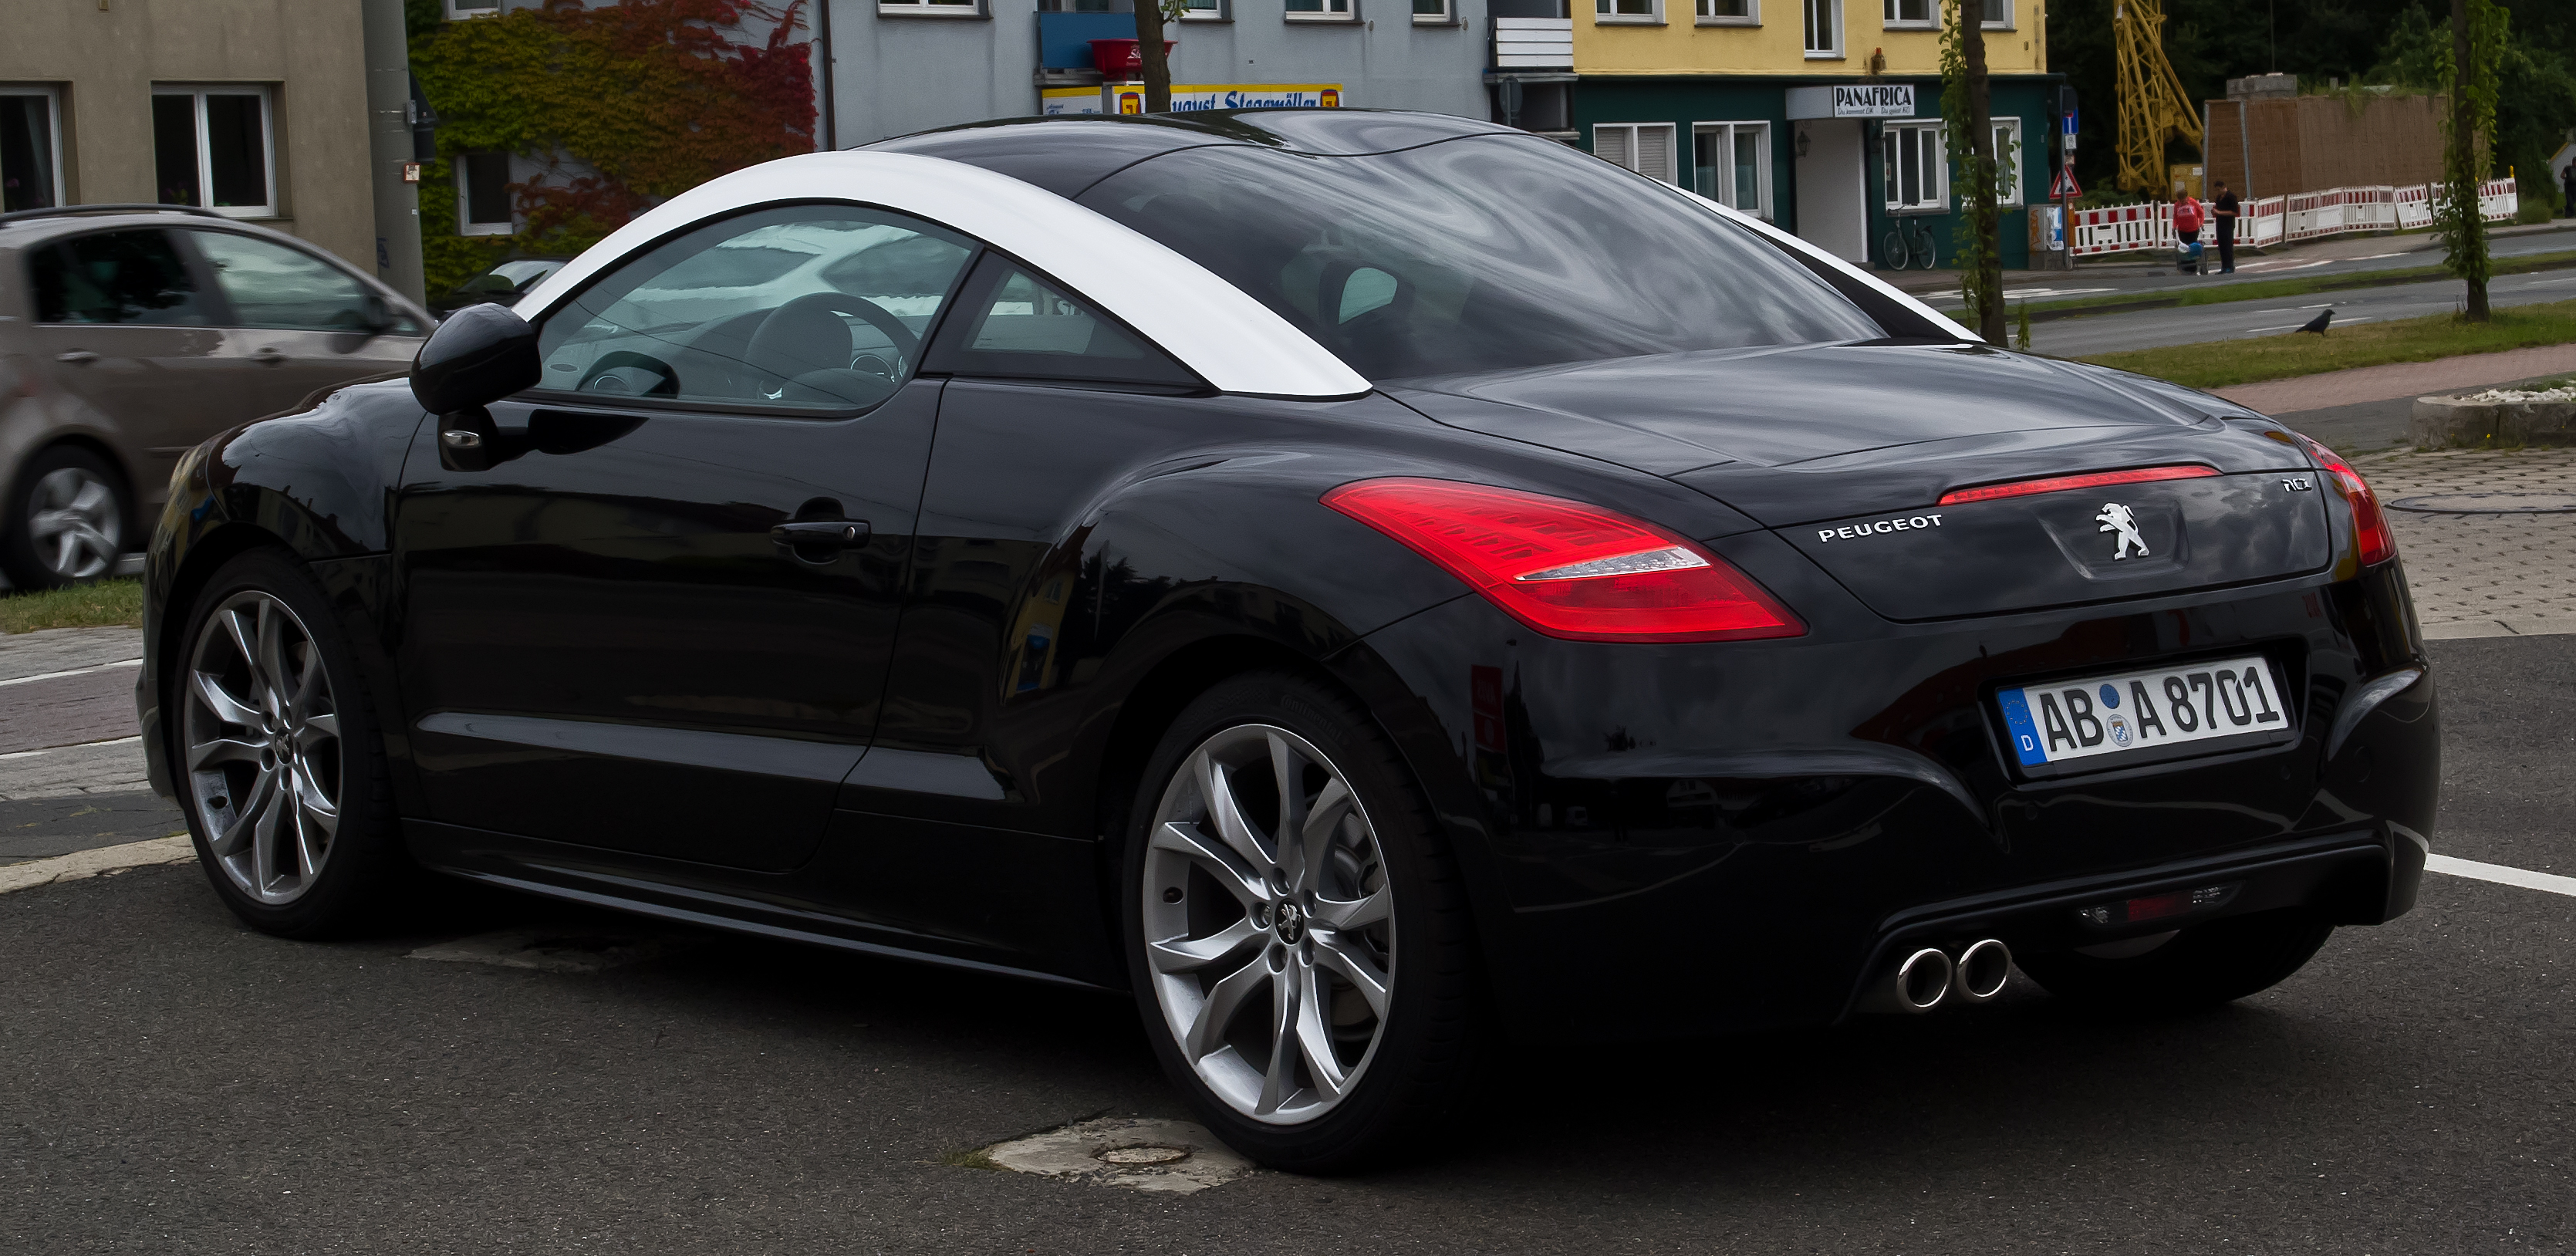 peugeot rcz cabrio. Black Bedroom Furniture Sets. Home Design Ideas